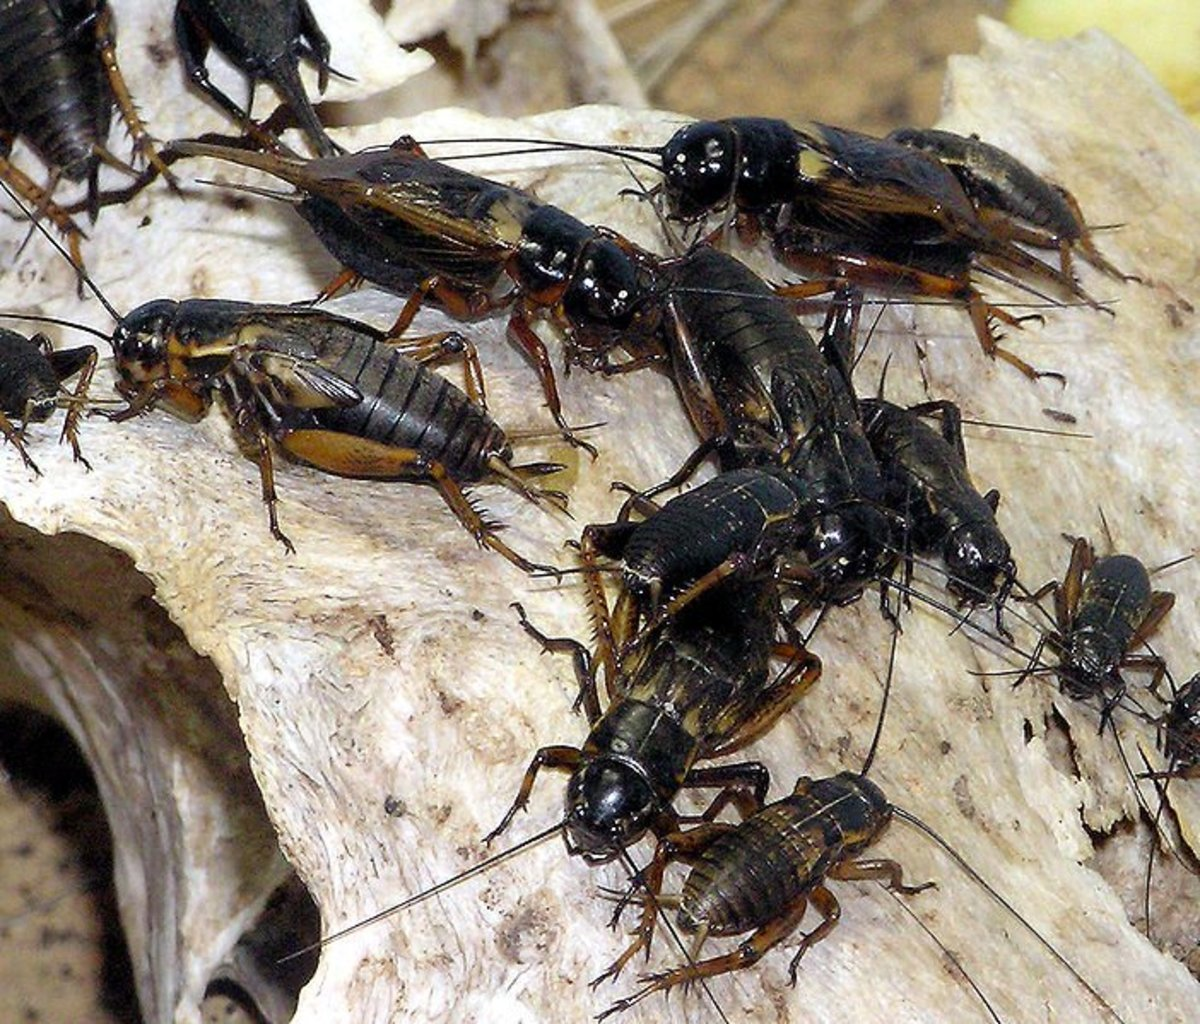 How to Get Rid of Crickets Inside Your House